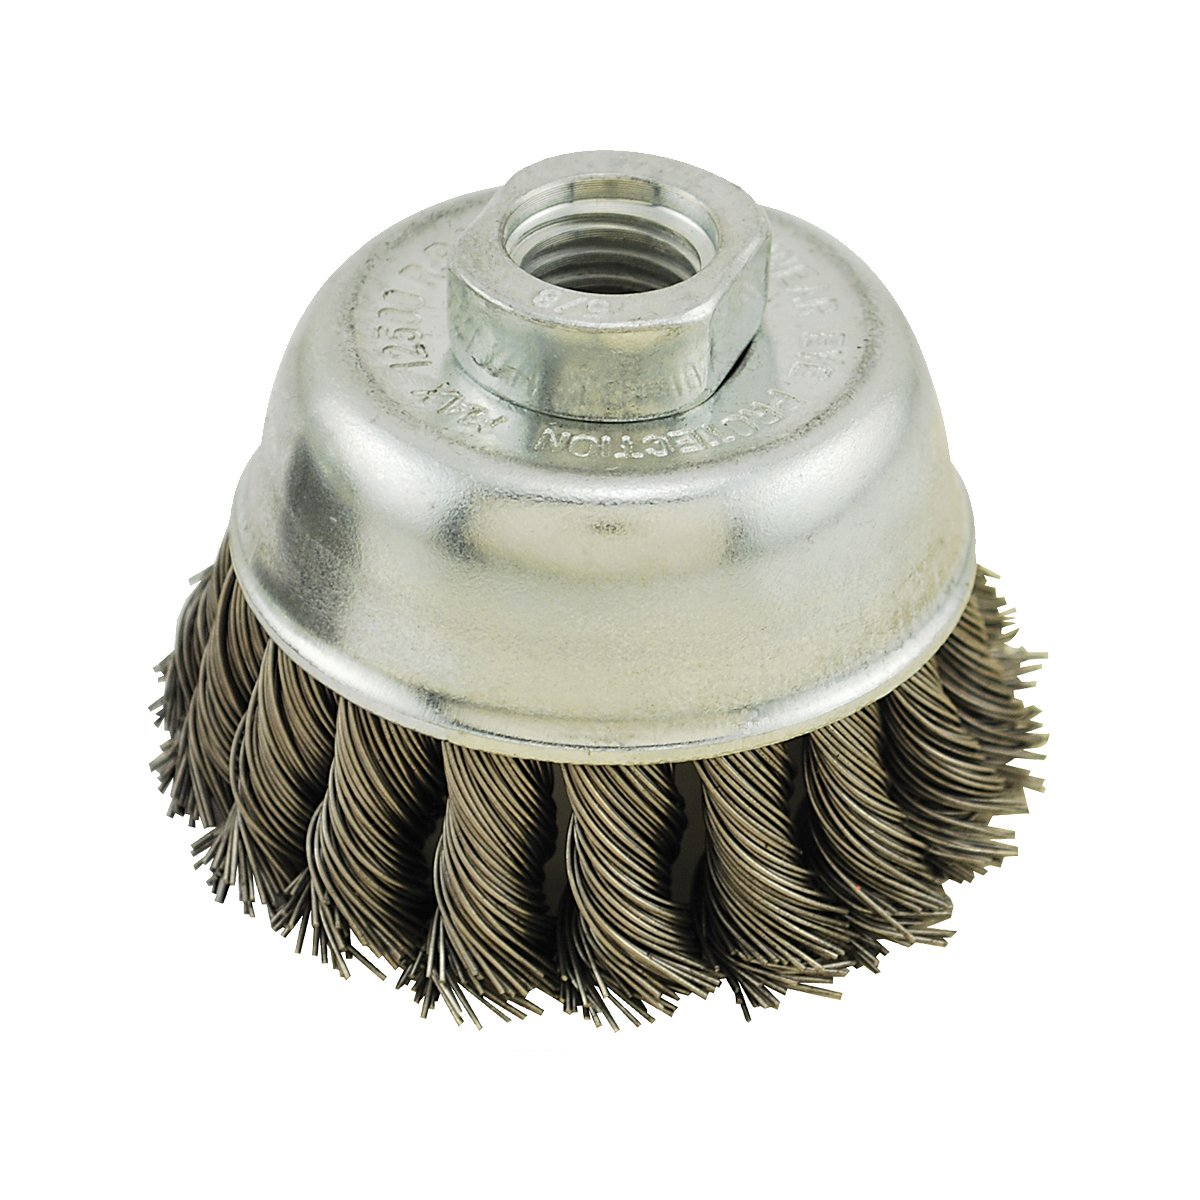 IVY Classic 38901 3 Inch x 5 8 Inch 11 Arbor Stainless Steel Knot Wire Cup Brush 0.020 Inch Coarse 1 Card